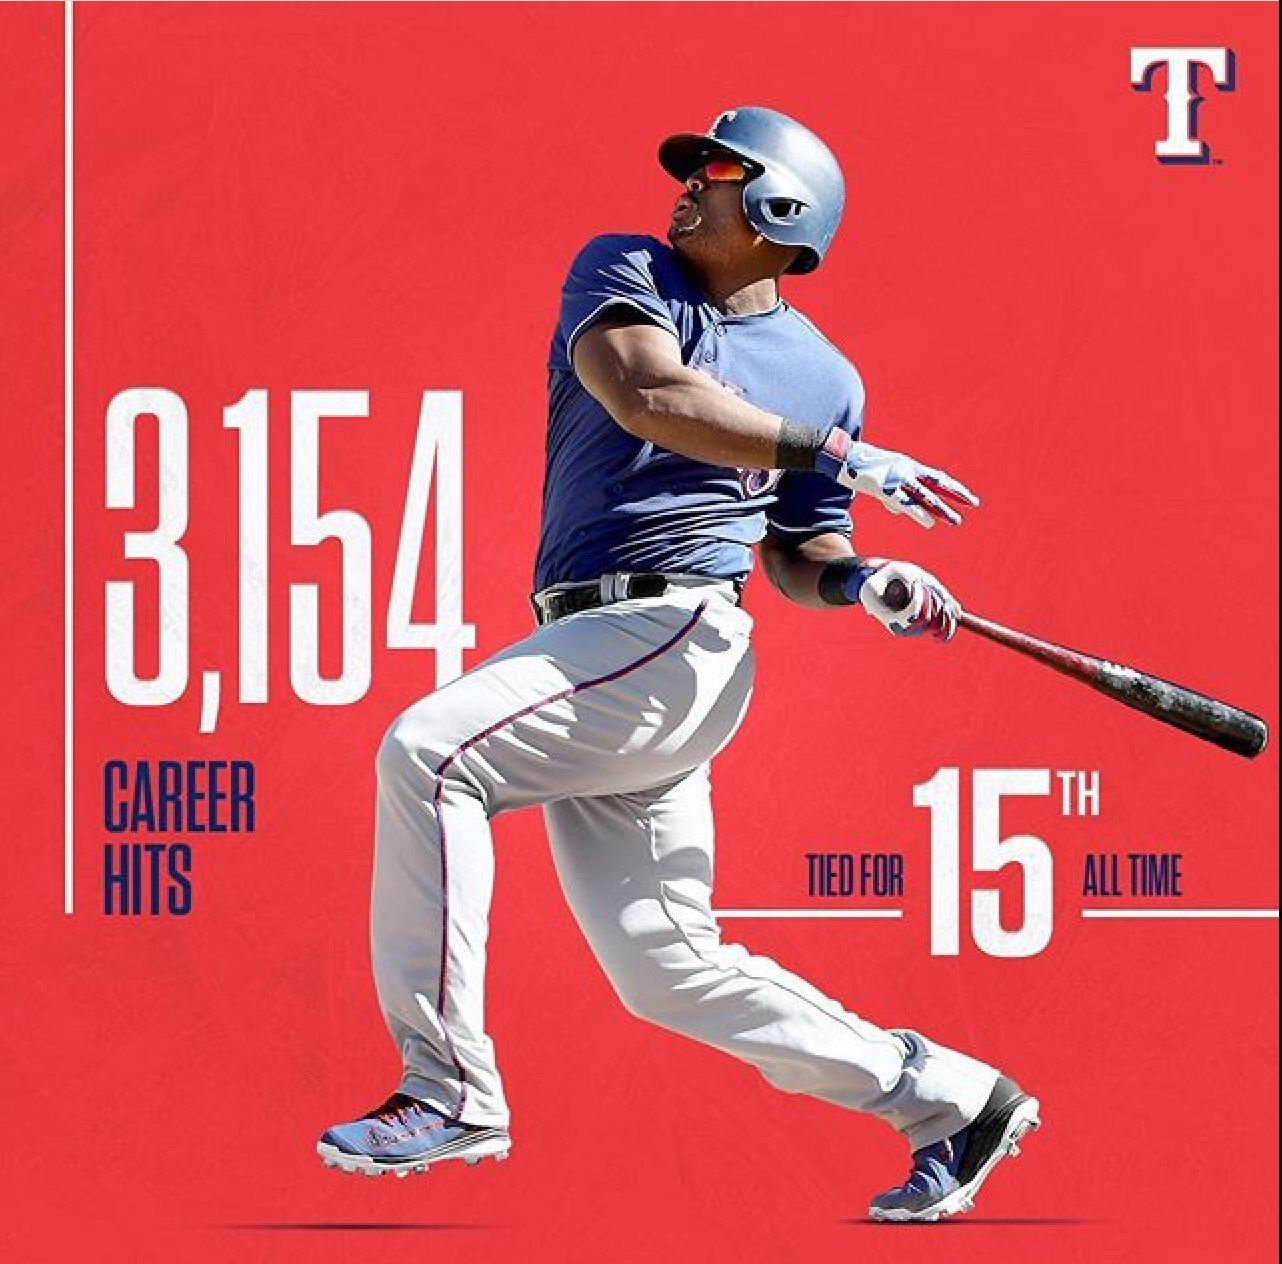 Pin By Kathy Hopkins On Cowboys Rangers Stars Mavs Golf Baseball Cards All About Time Texas Rangers